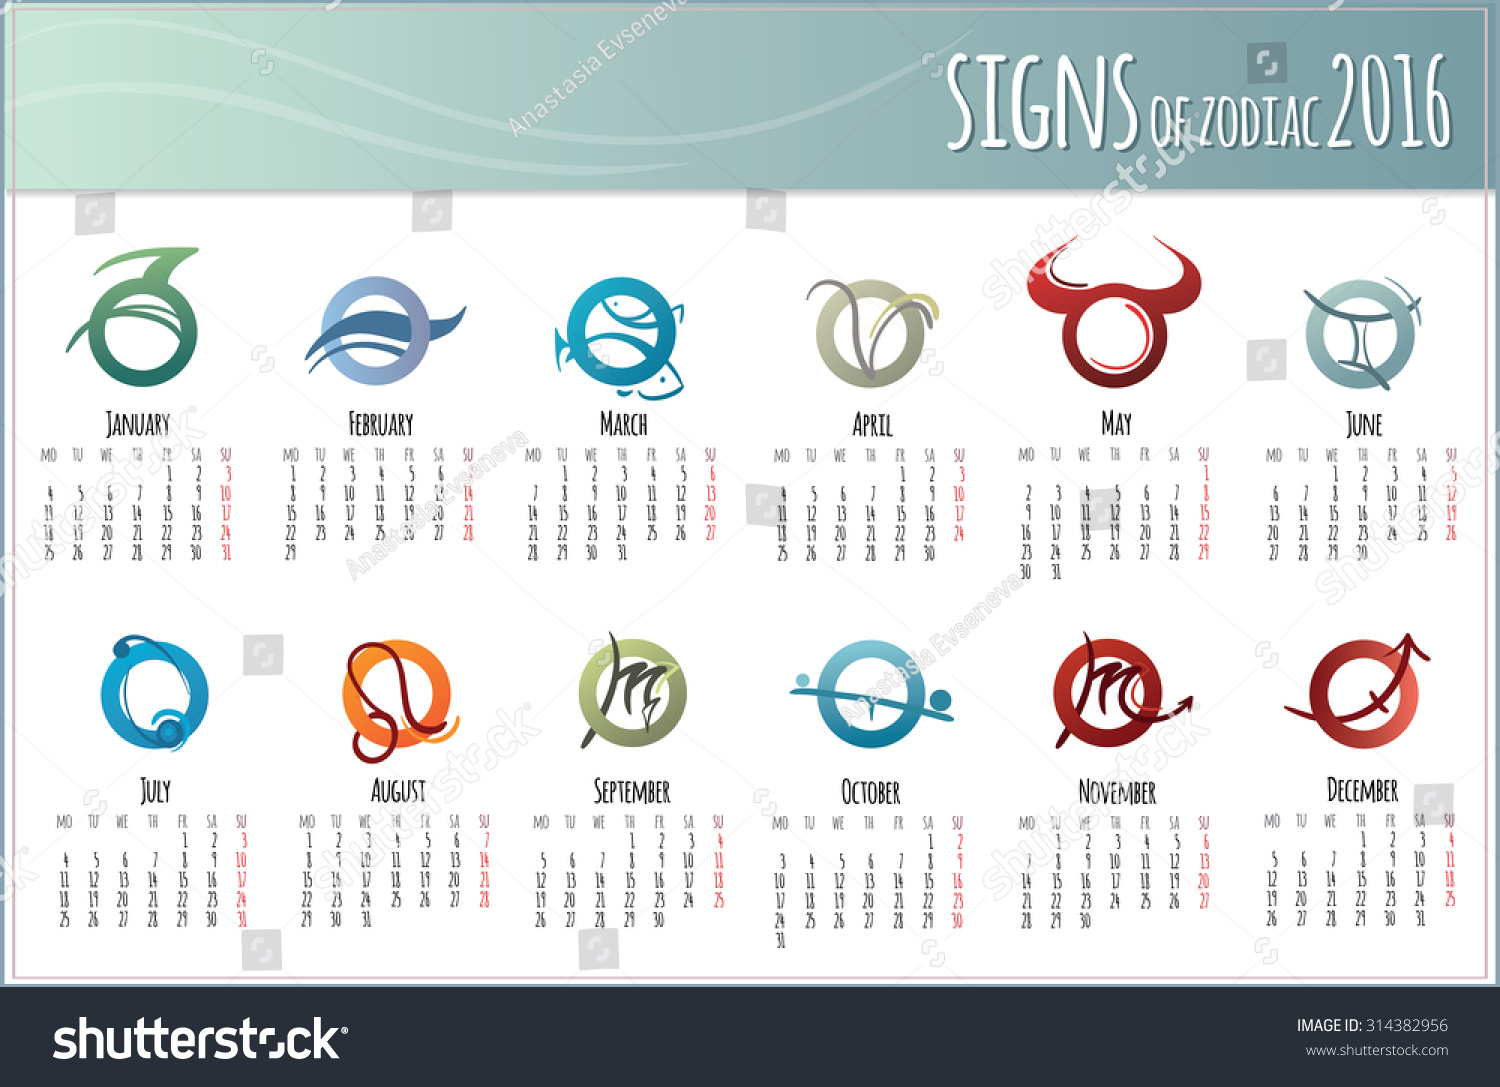 Design european 2016 year vector calendar stock vector 314382956 design european 2016 year vector calendar for print with zodiac symbols week starts monday biocorpaavc Image collections